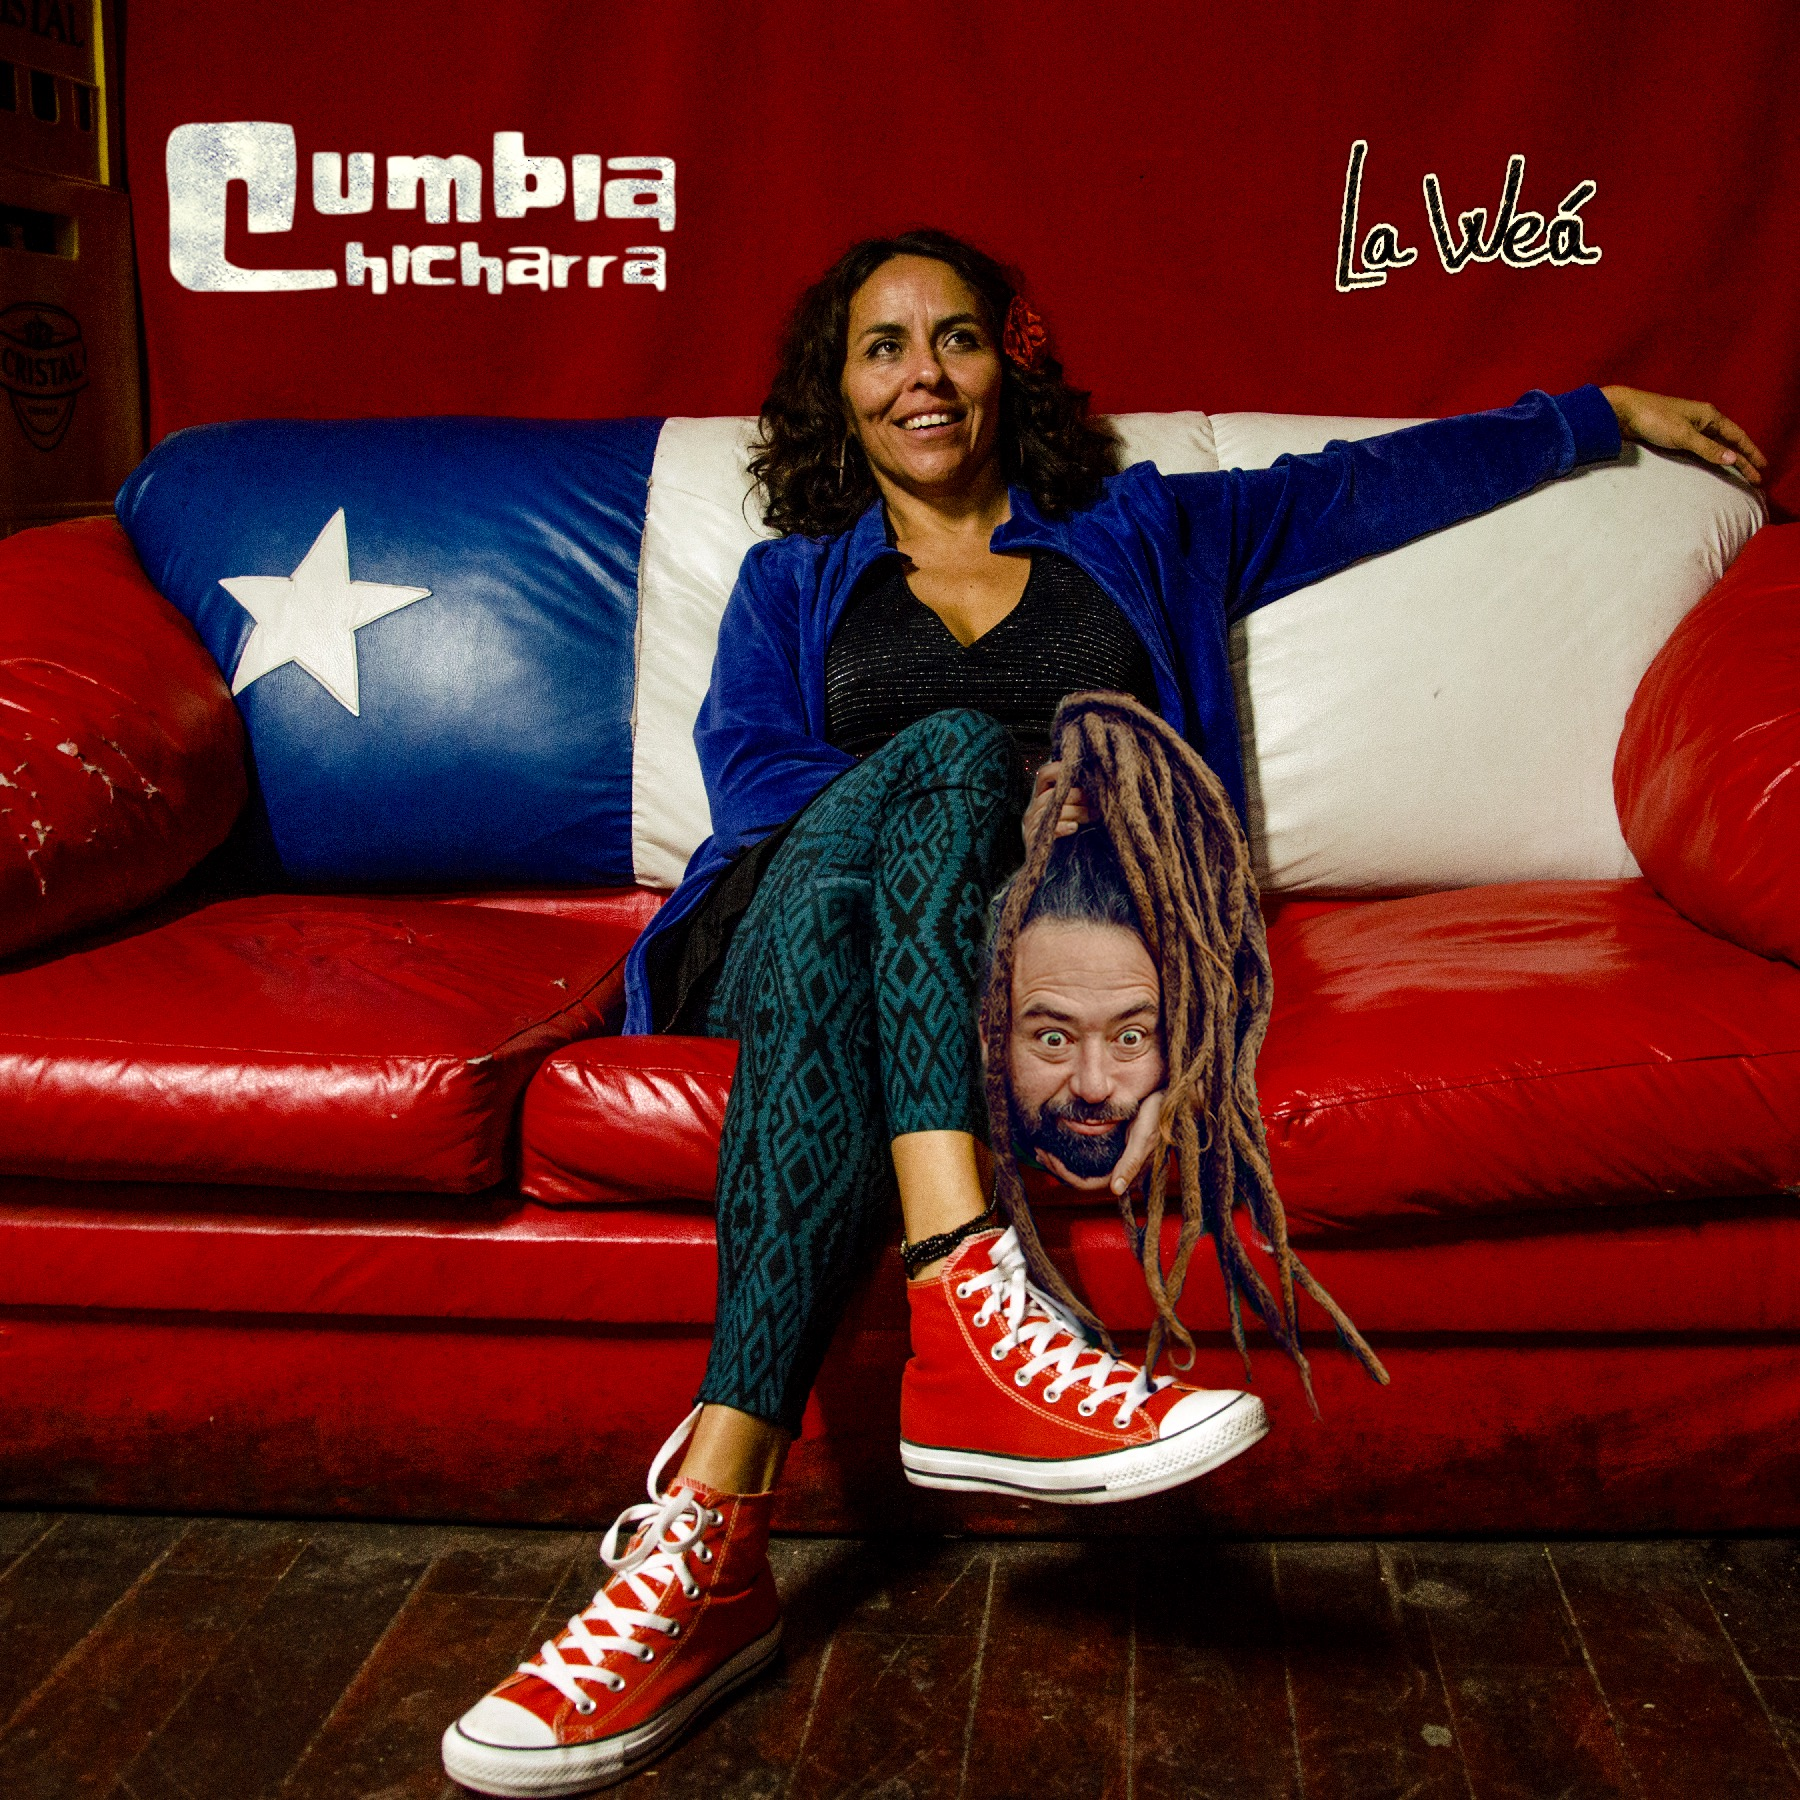 Download / Stream Cumbia Chicharra / new single